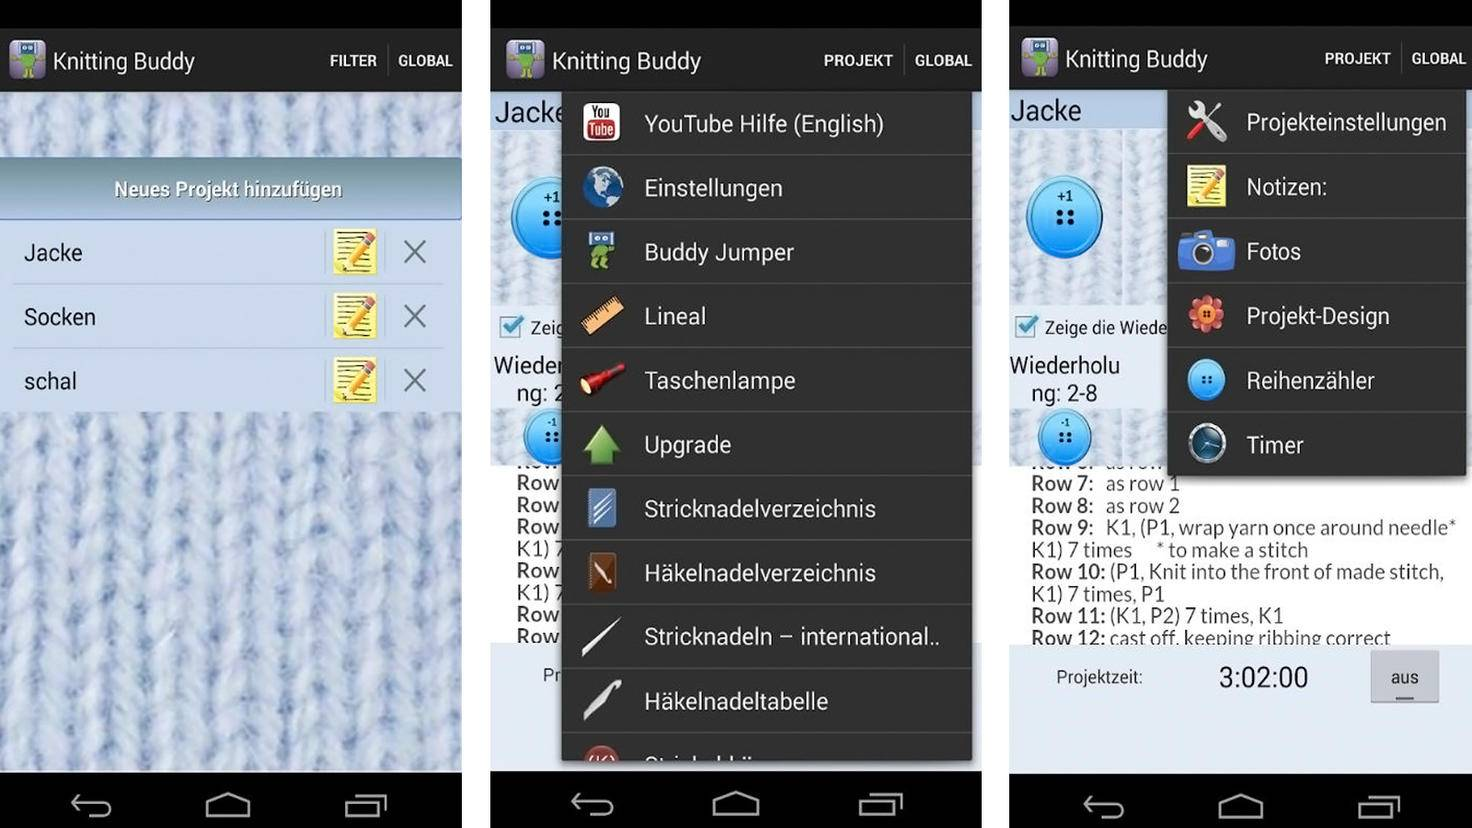 Knitting Buddy App-Google Play Store-Colorwork Apps